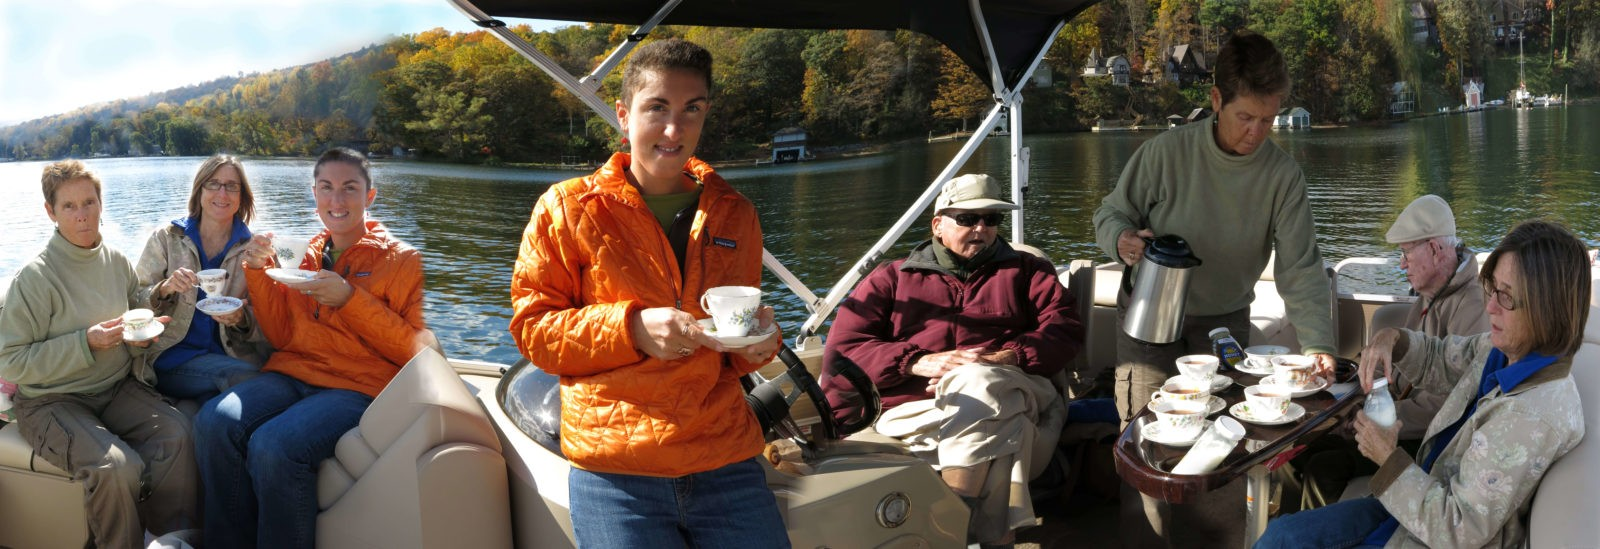 friends with fathers drink tea on a boat on Cayuga Lake in october